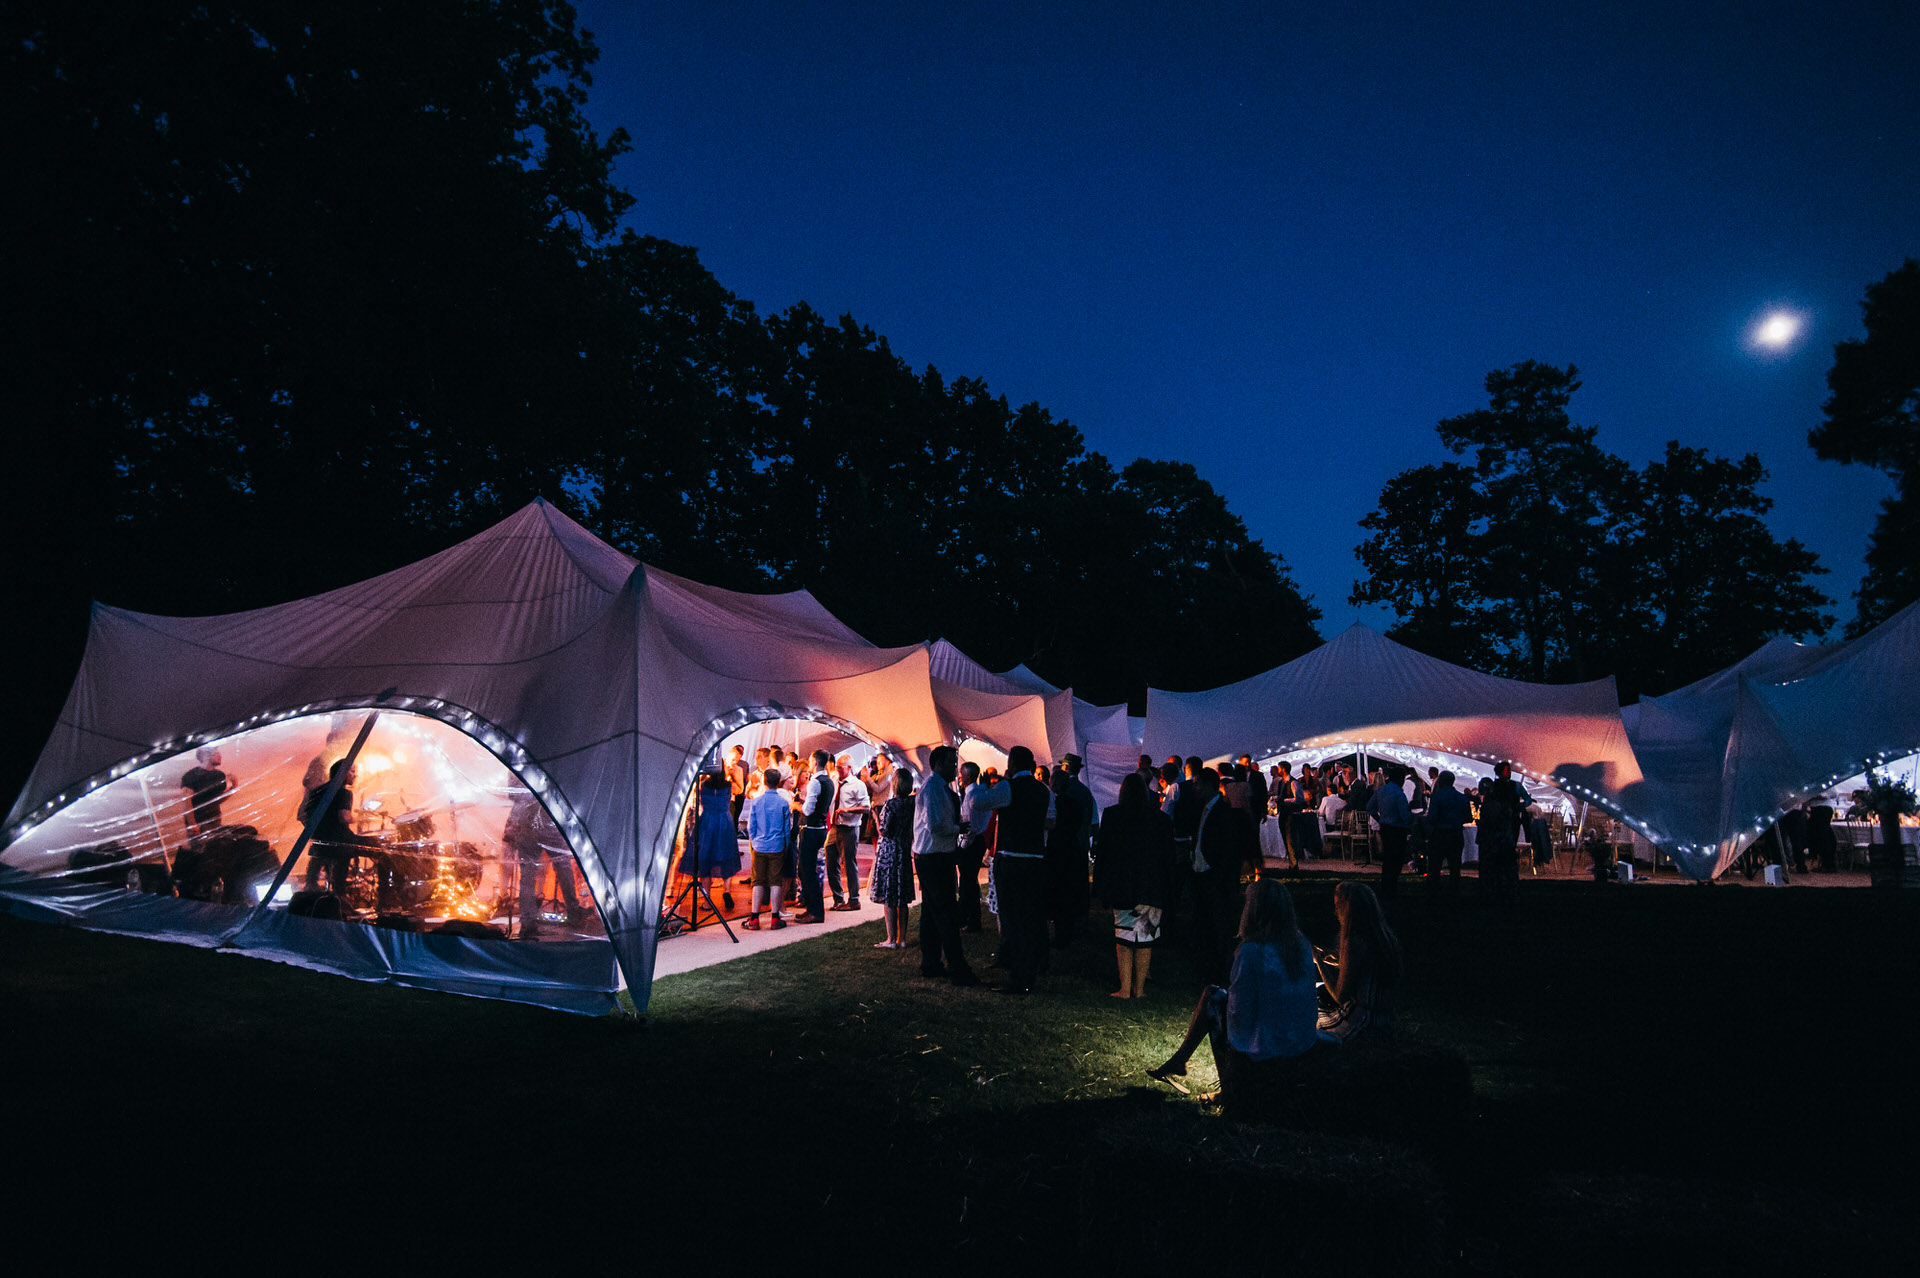 RHS Wisely wedding marquee